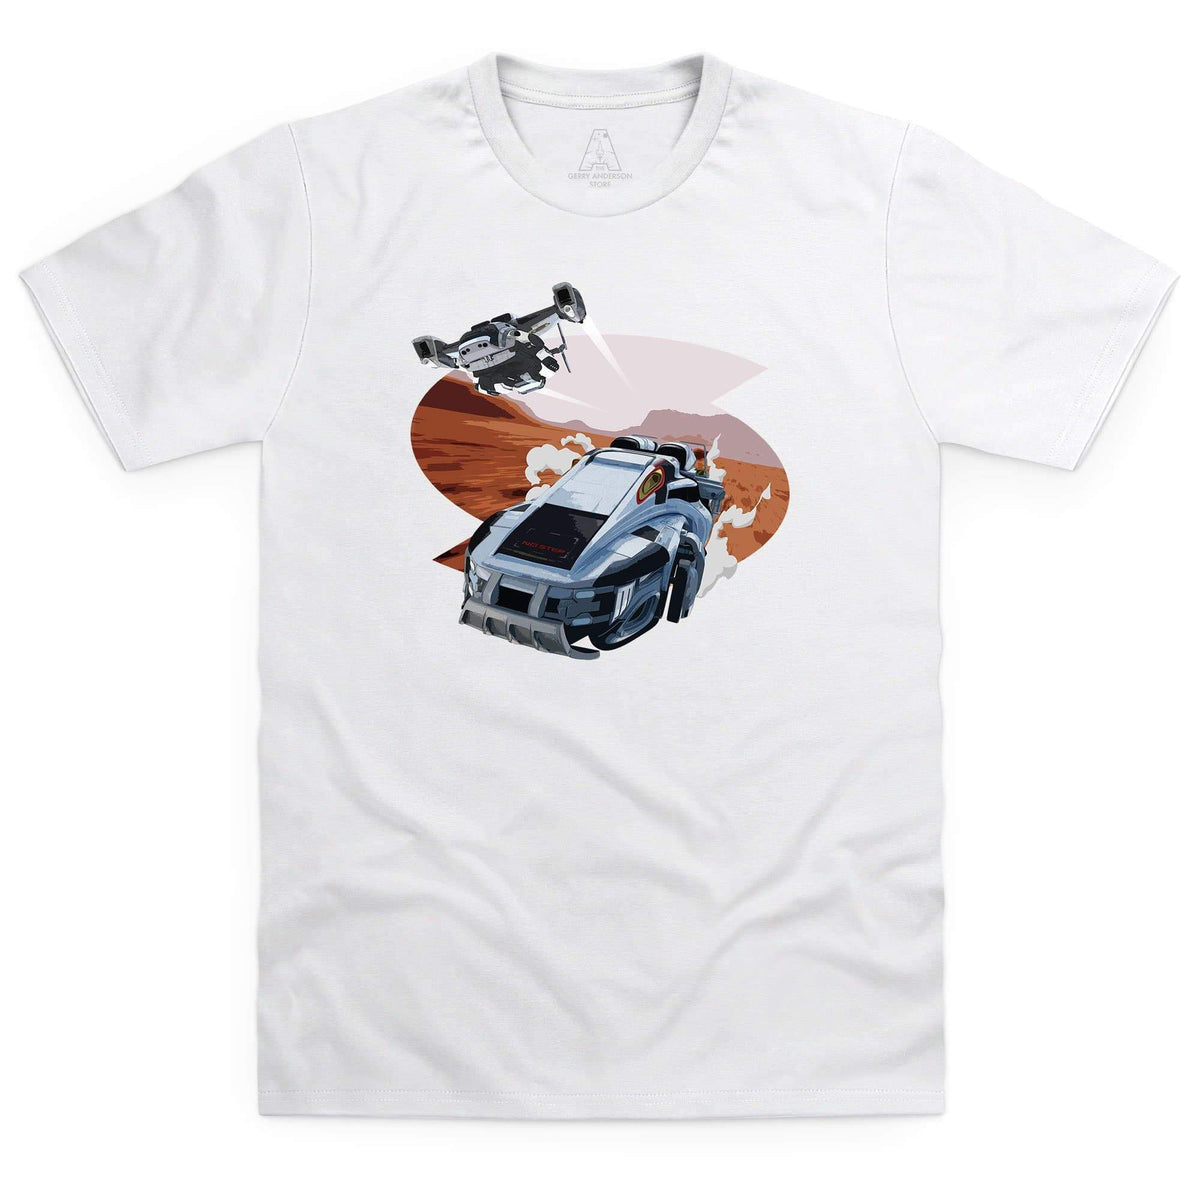 New Captain Scarlet Rhino Men's White T-Shirt [Official & Exclusive] - The Gerry Anderson Store